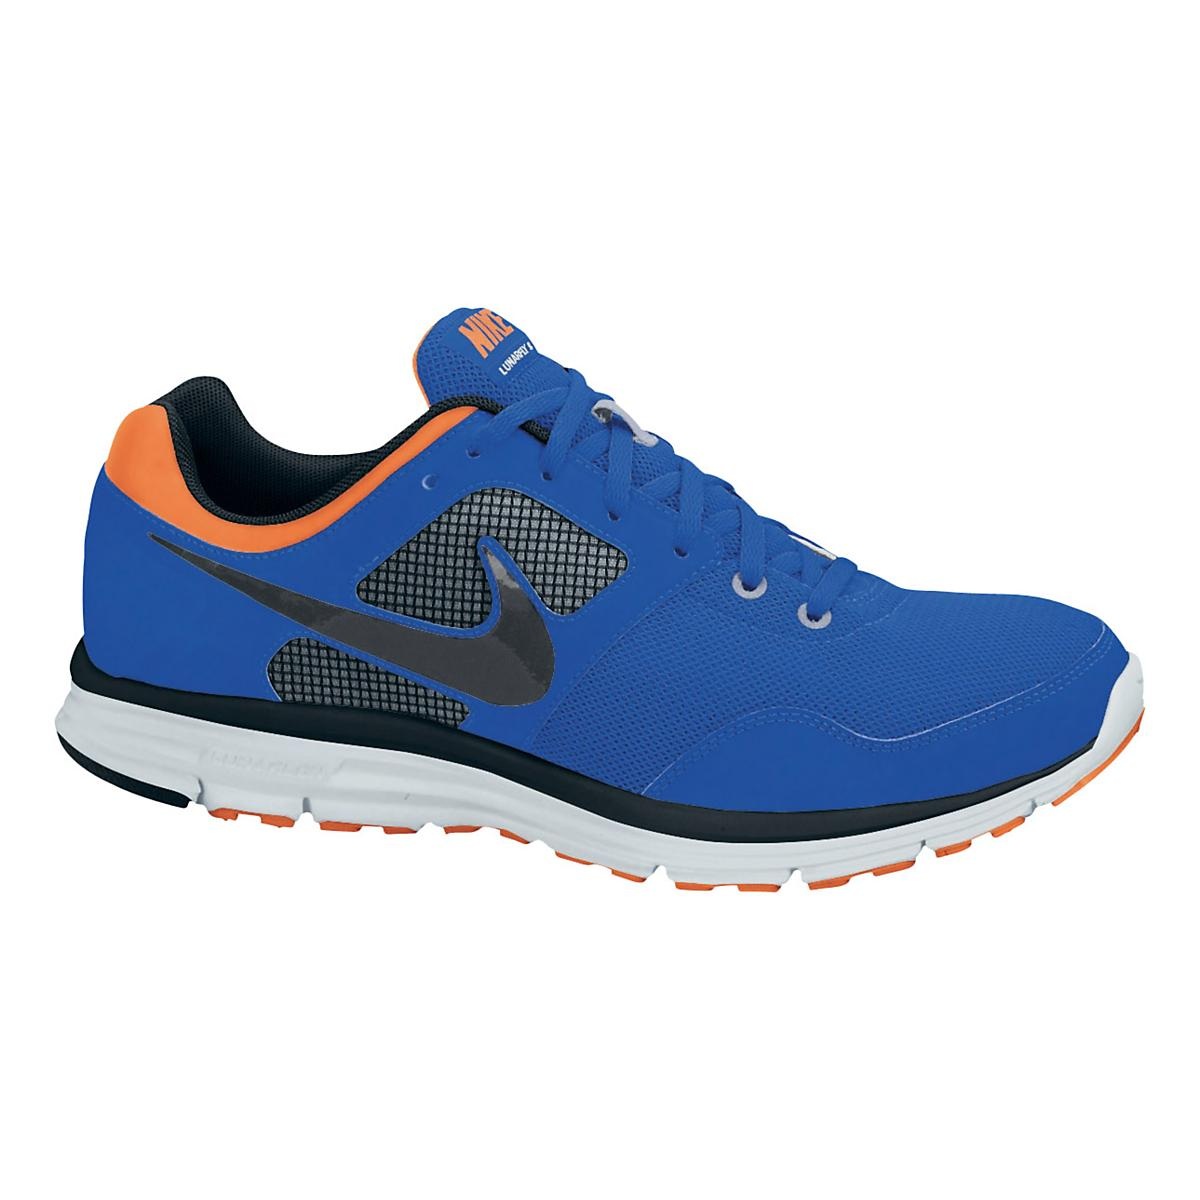 cde481703728 Mens Nike LunarFly+ 4 Running Shoe at Road Runner Sports